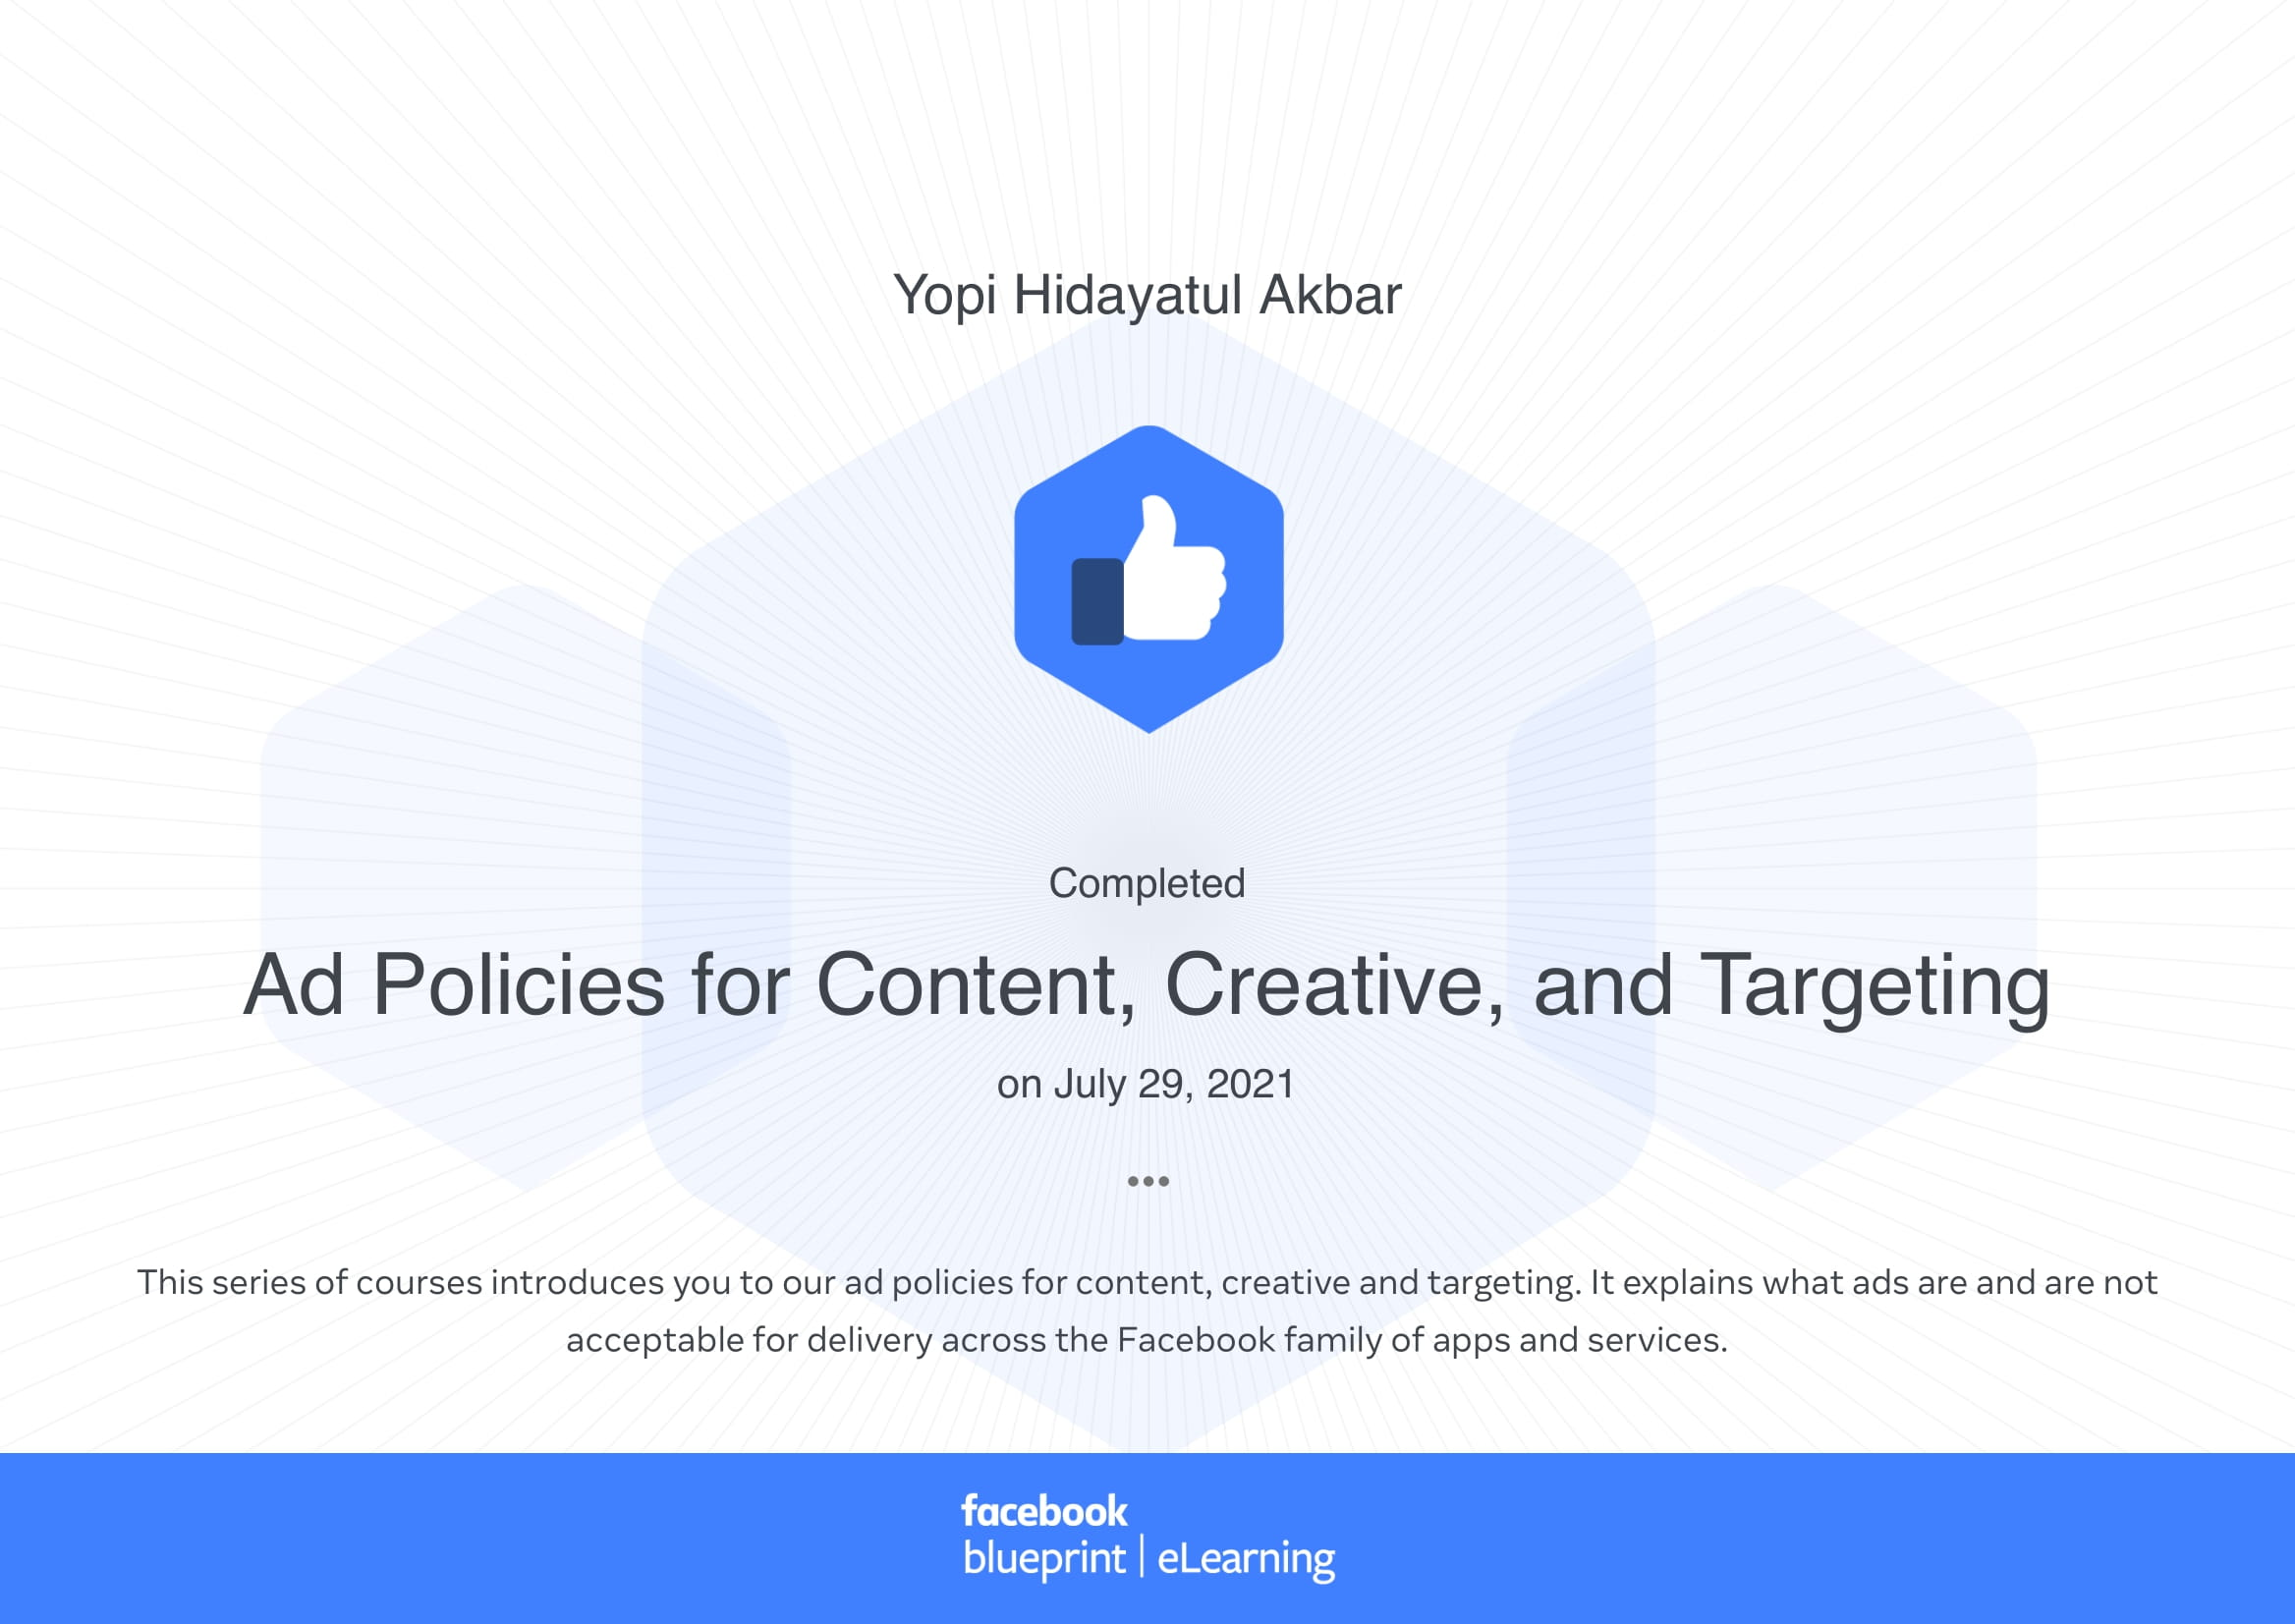 Ad Policies for Content, Creative, and Targeting _ Learn new skills to build your brand or business-1